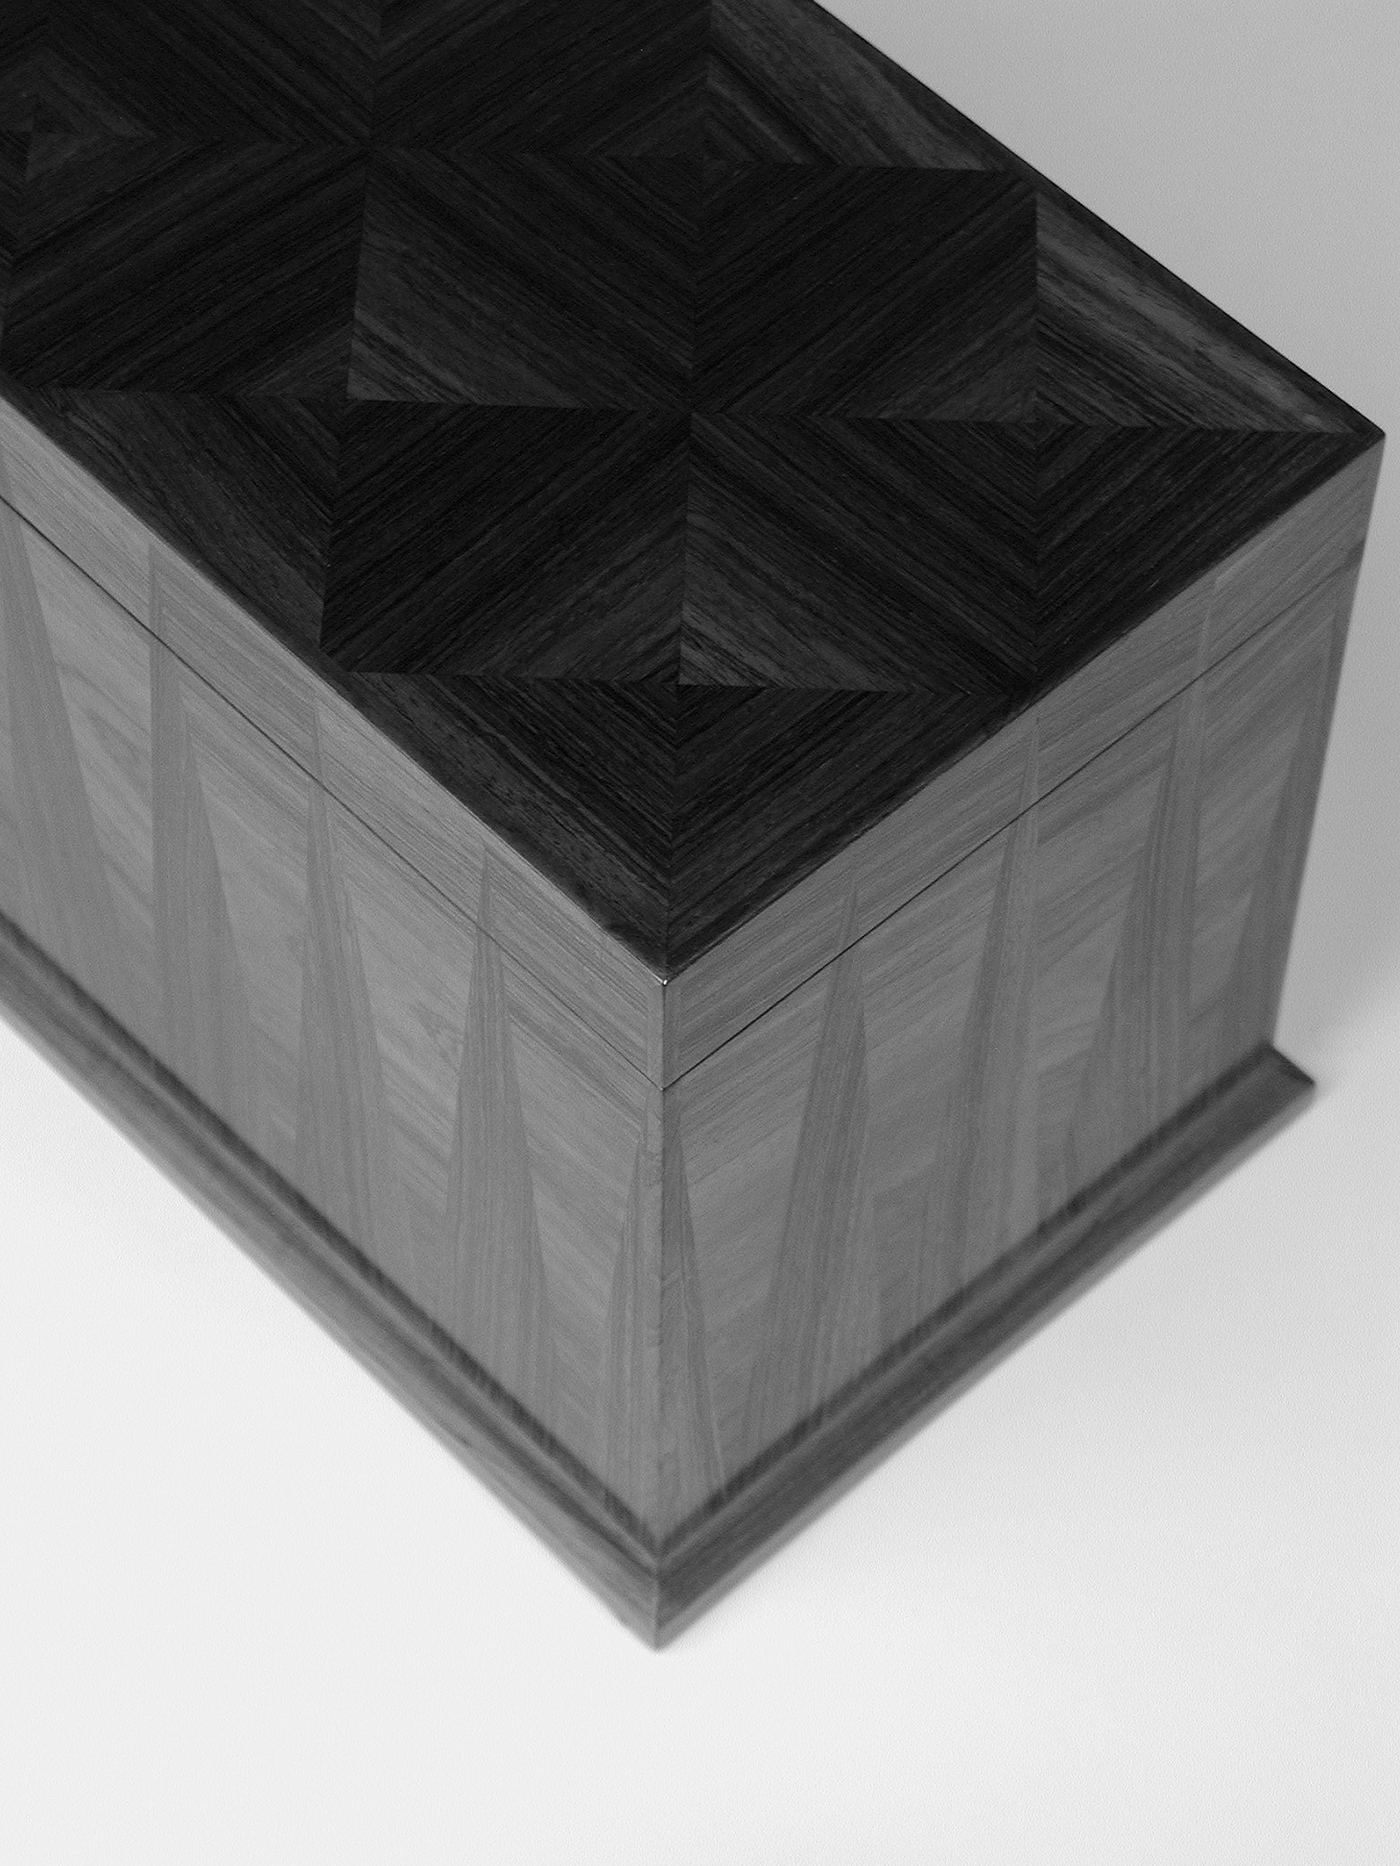 Cabinetmaking project - Rosewood box